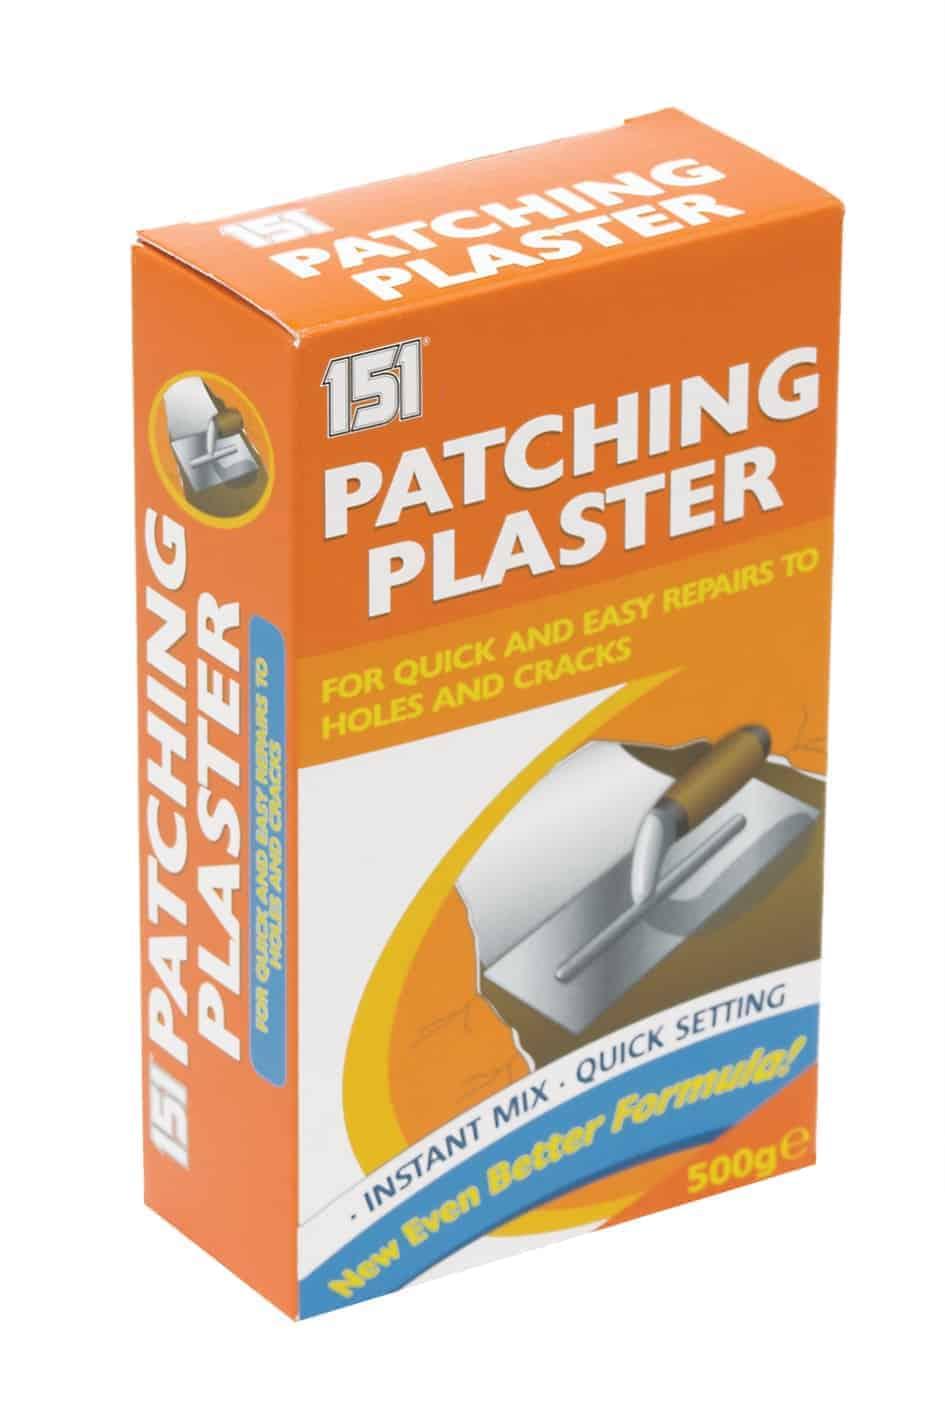 151 Products 500g Patching Plaster